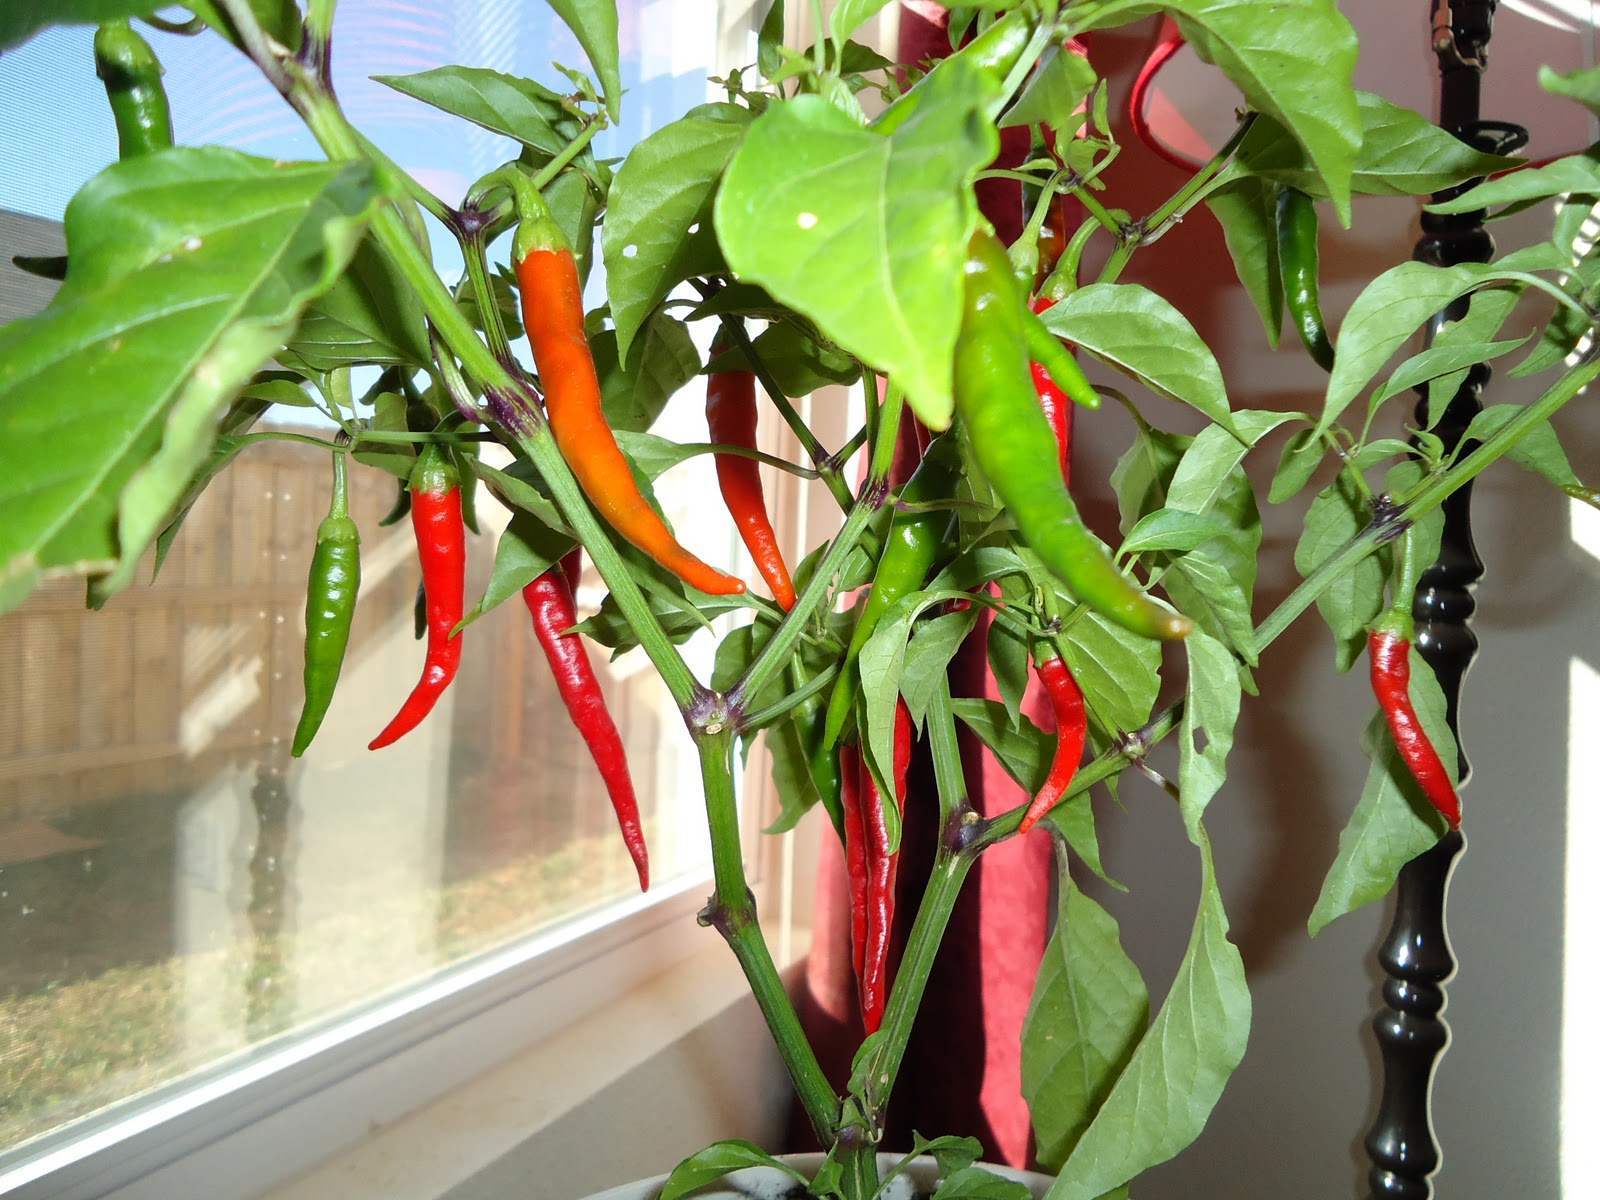 12 healthy vegetables and herbs to grow indoors the self sufficient living - Planting pepper garden ...